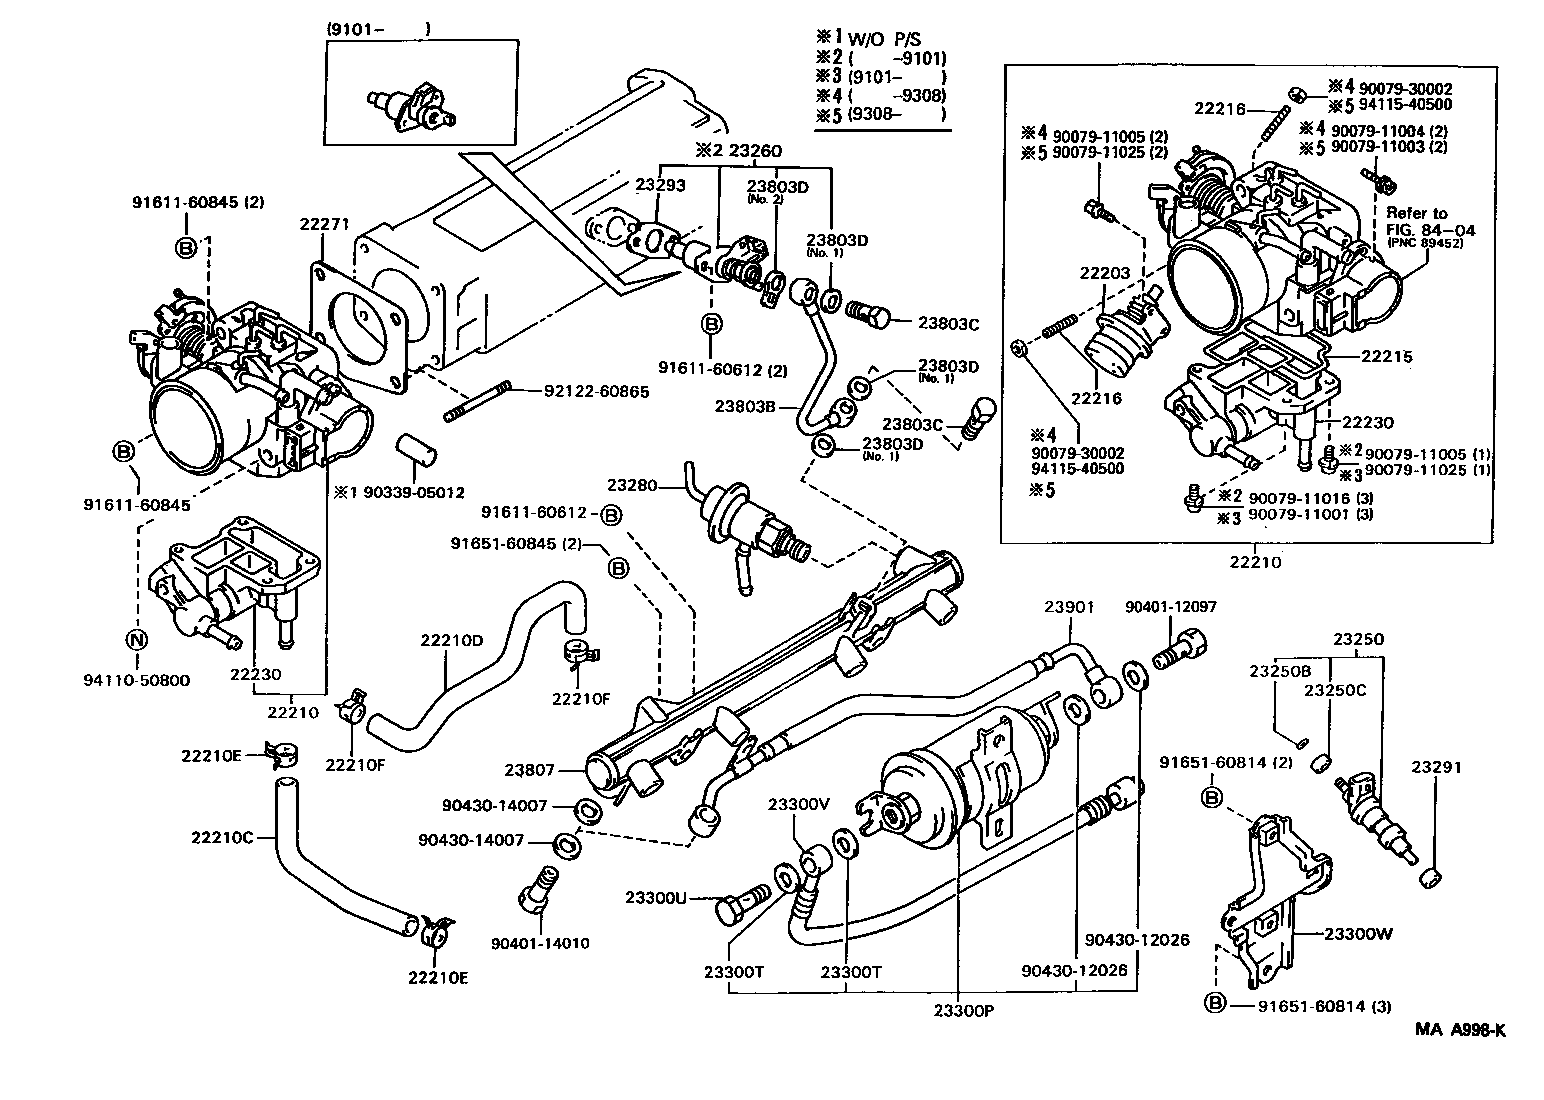 Fuel Injection System Illust No 1 Of 2 22re P